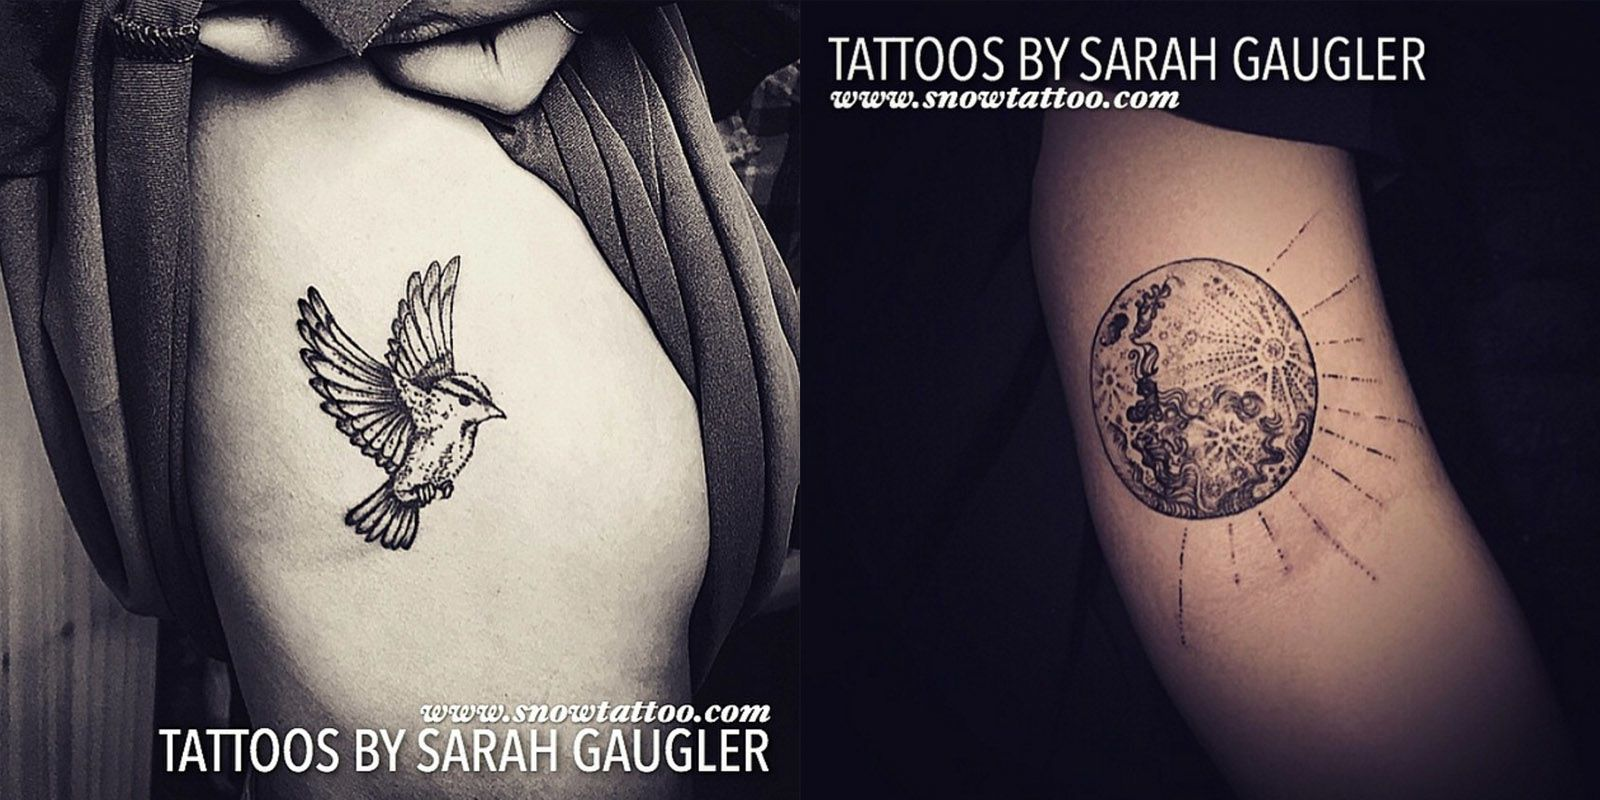 Whether you're covered in tats or prefer to remain ink-free, there's no denying tattooing is an art.